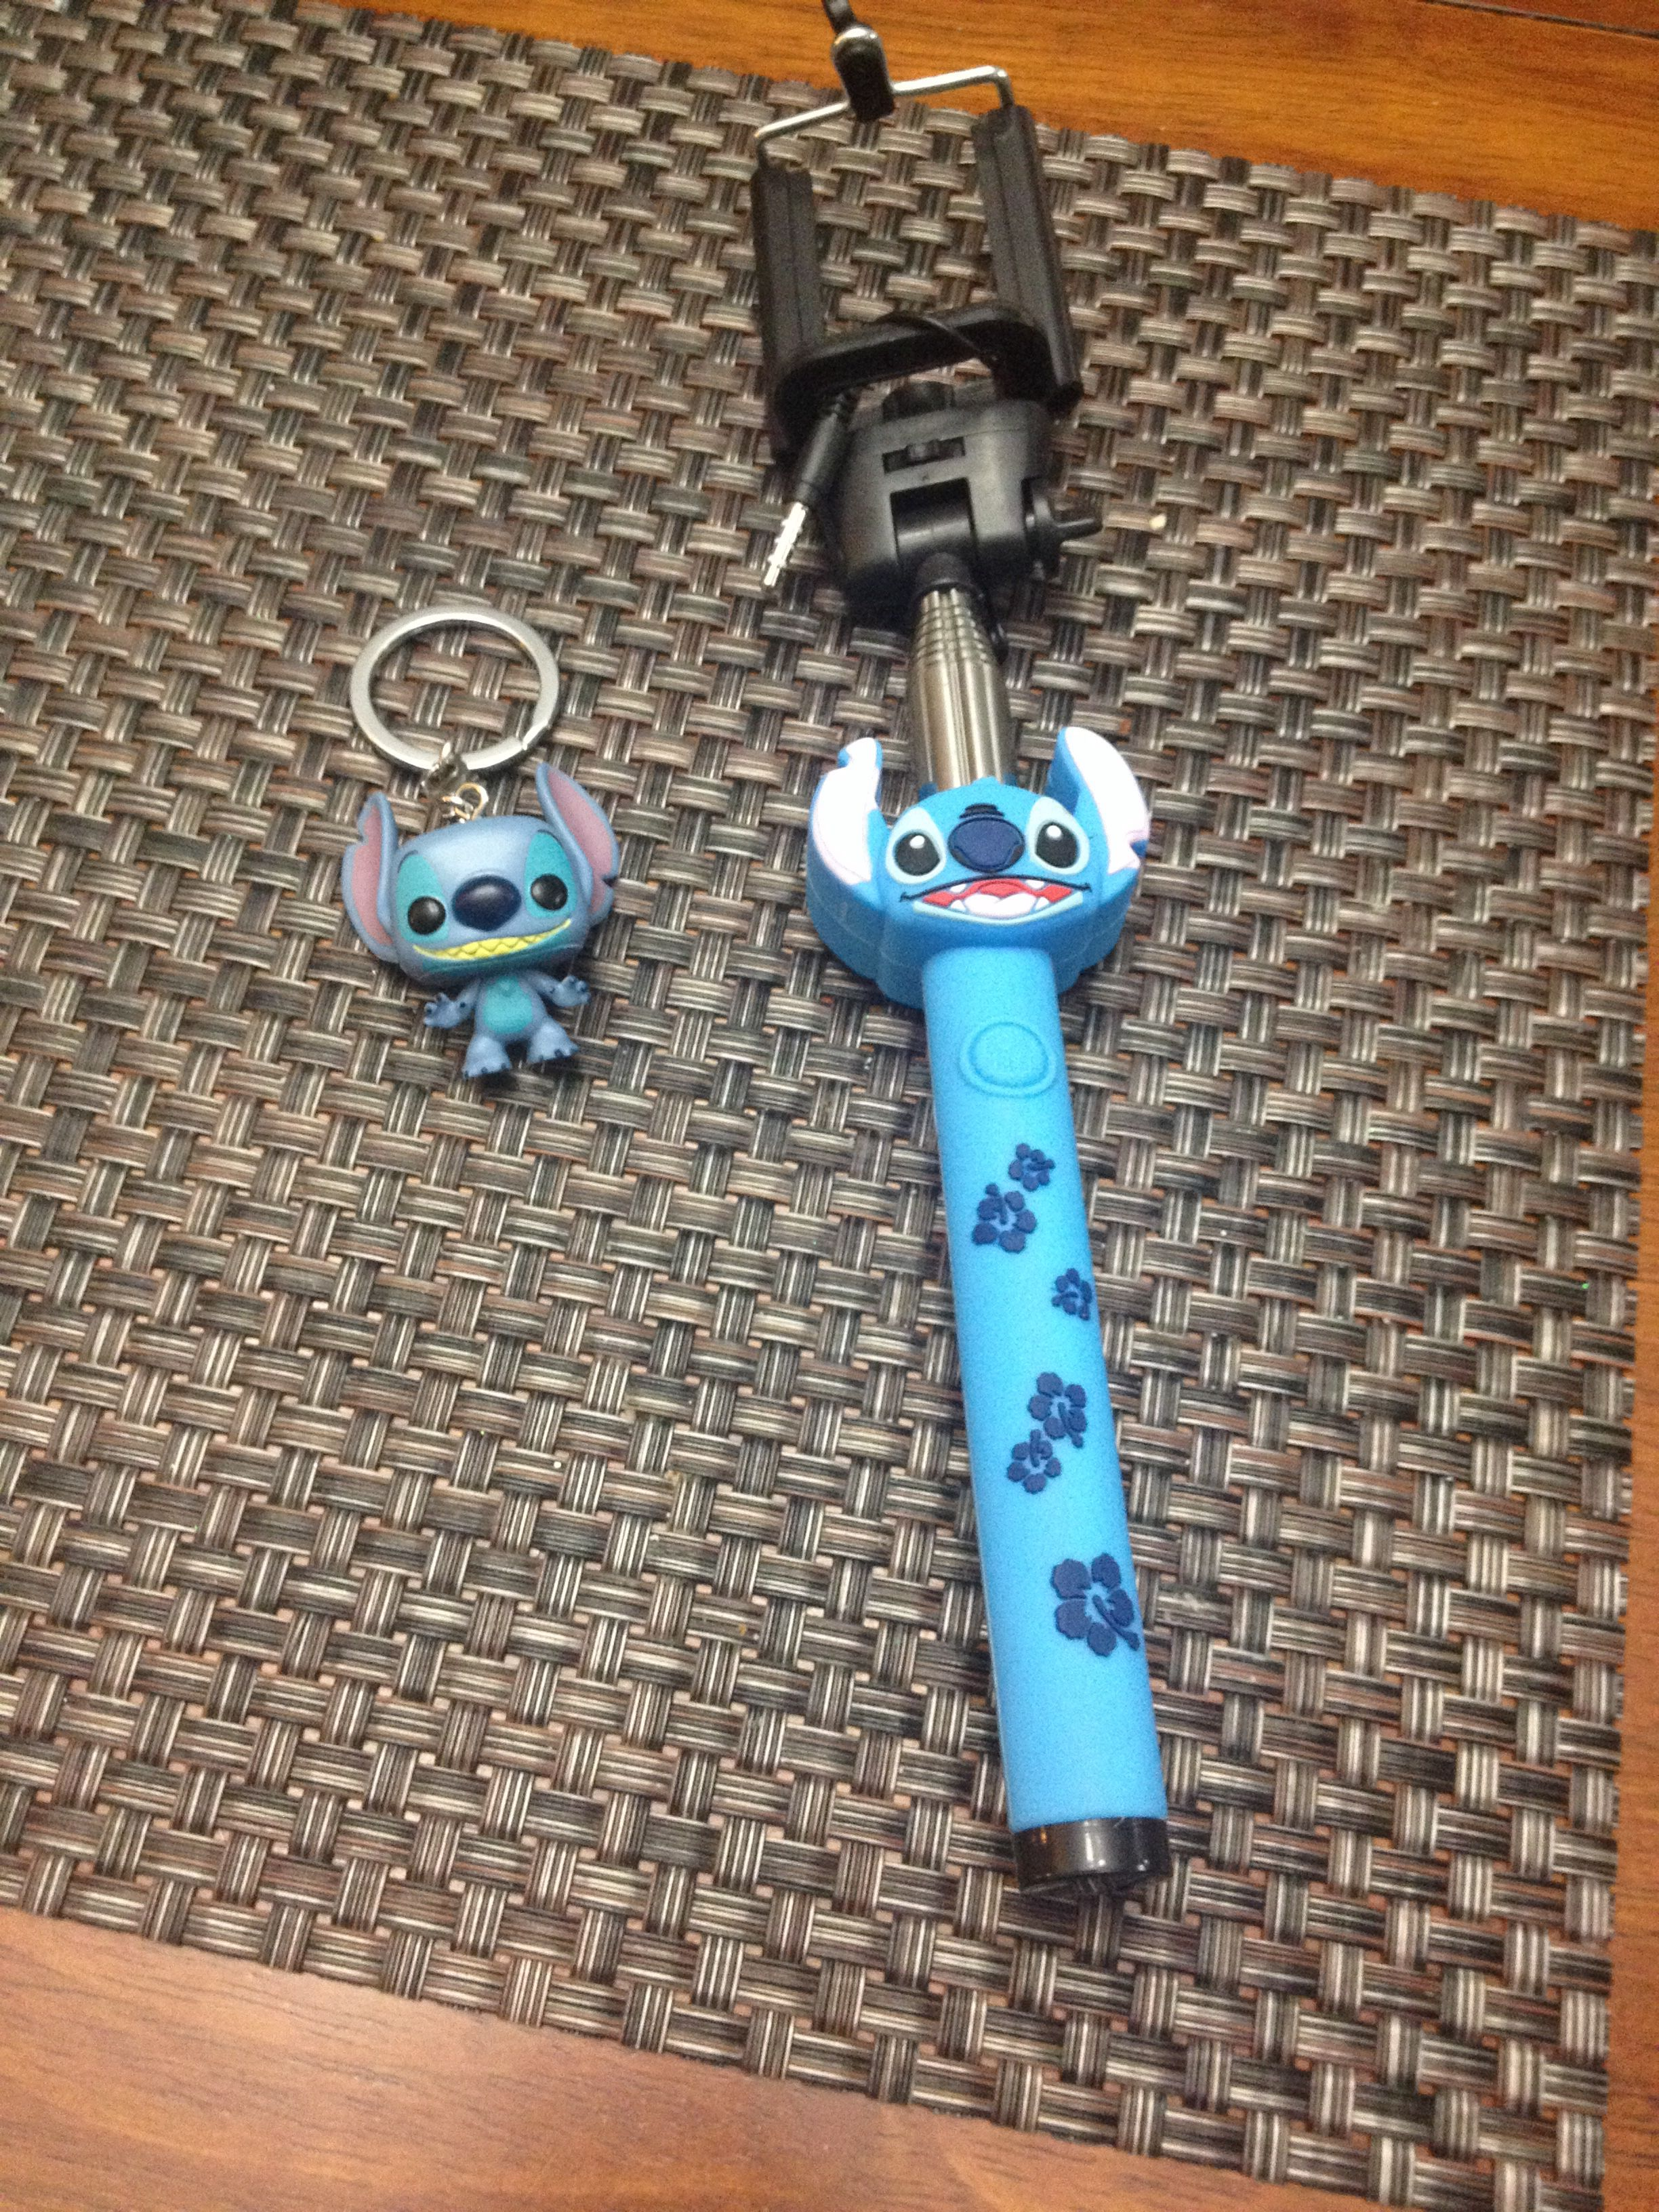 Went to hot topic and found these cute stitch things!